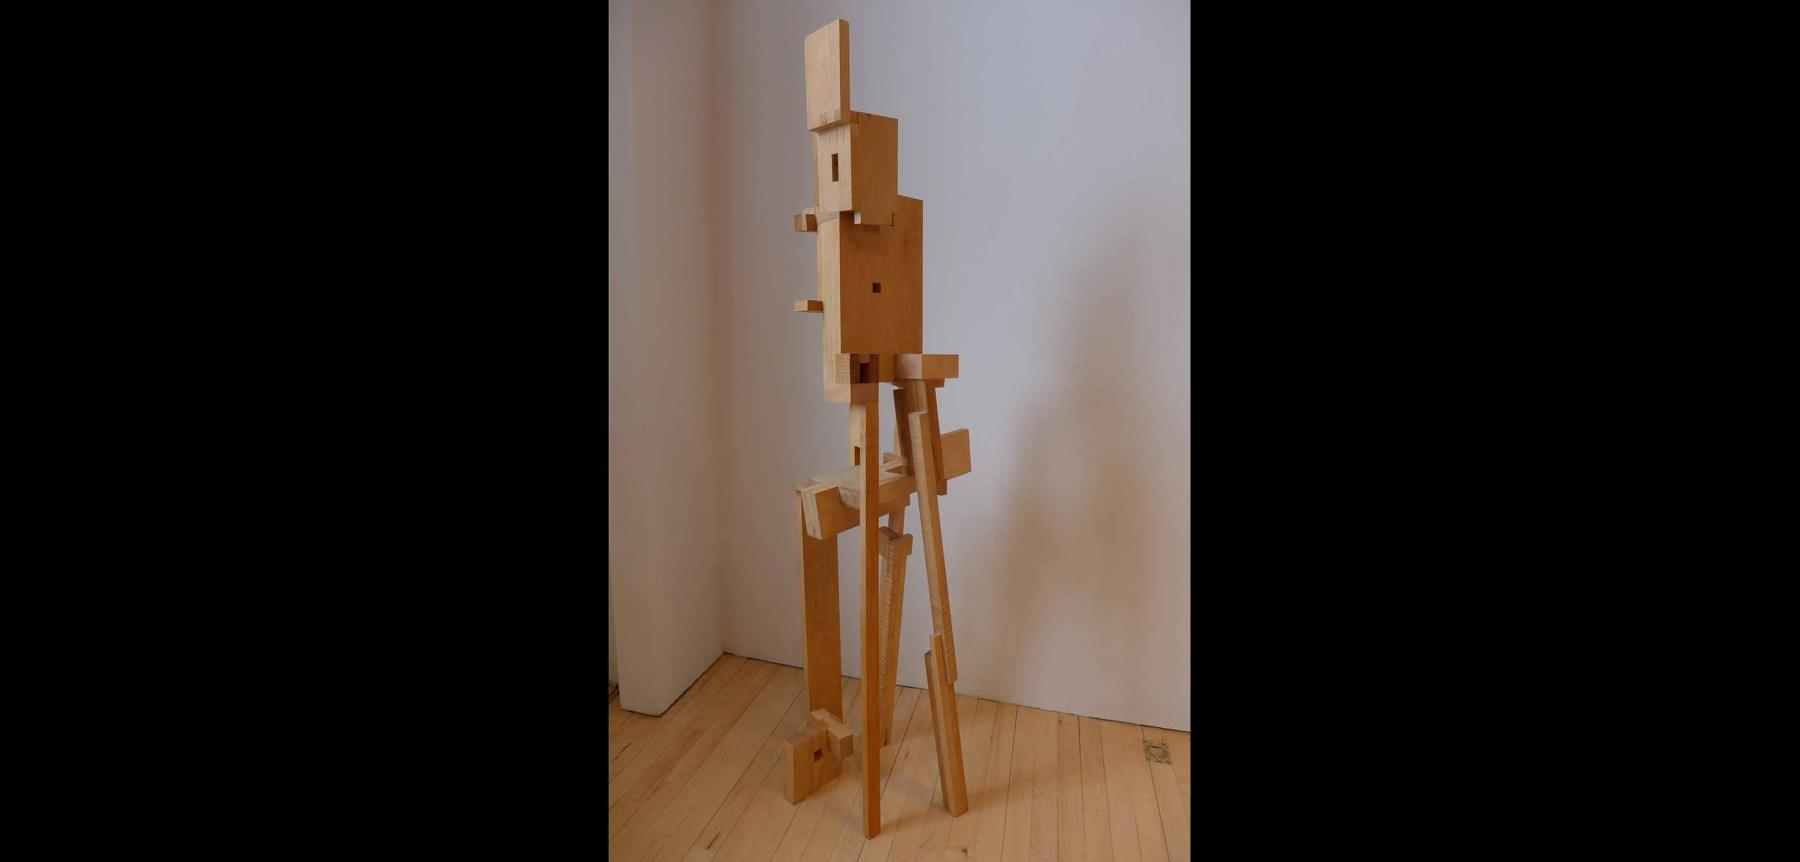 Abstract wooden sculpture piece with various sized rectangular pieces put together.